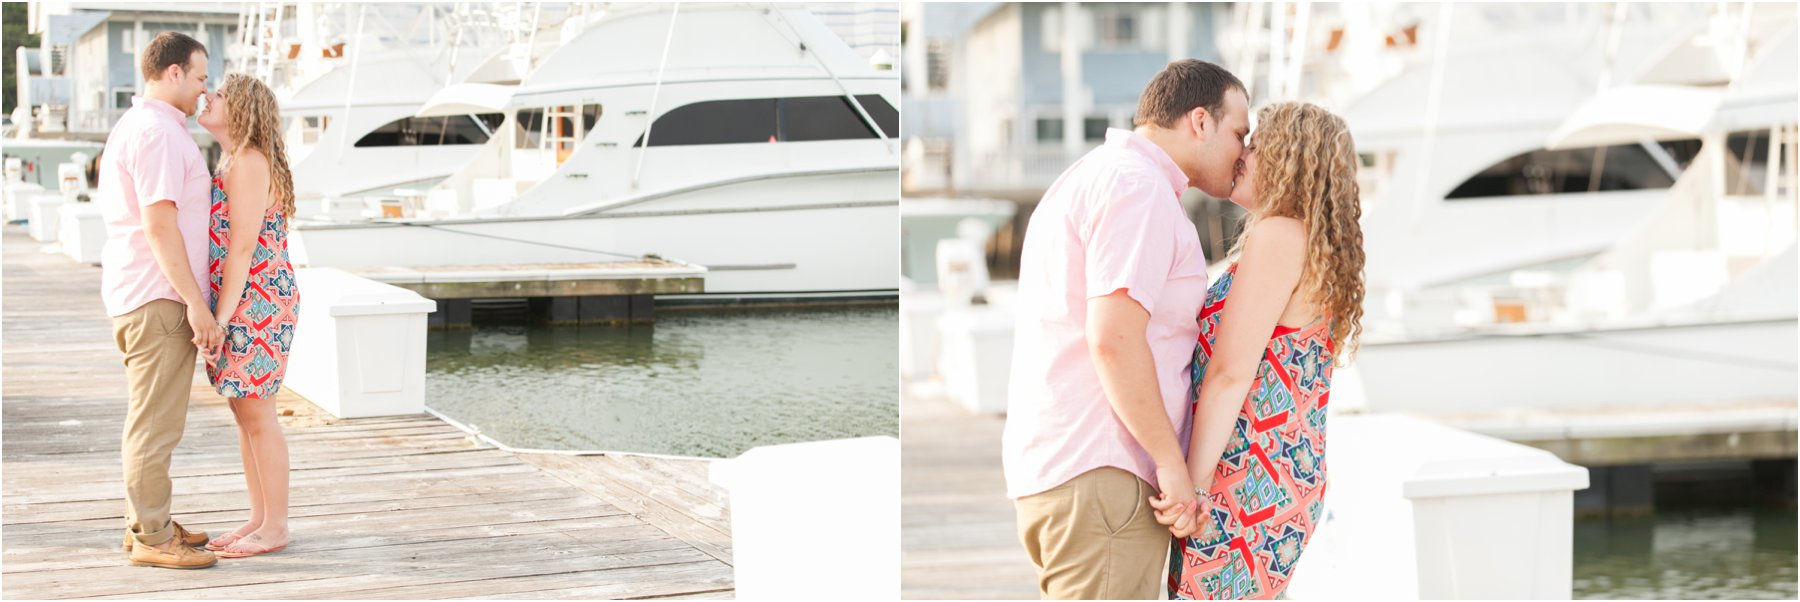 engagement_beach_Photography_Jessica_Ryan_Photography_virginia_virginia_beach_0300